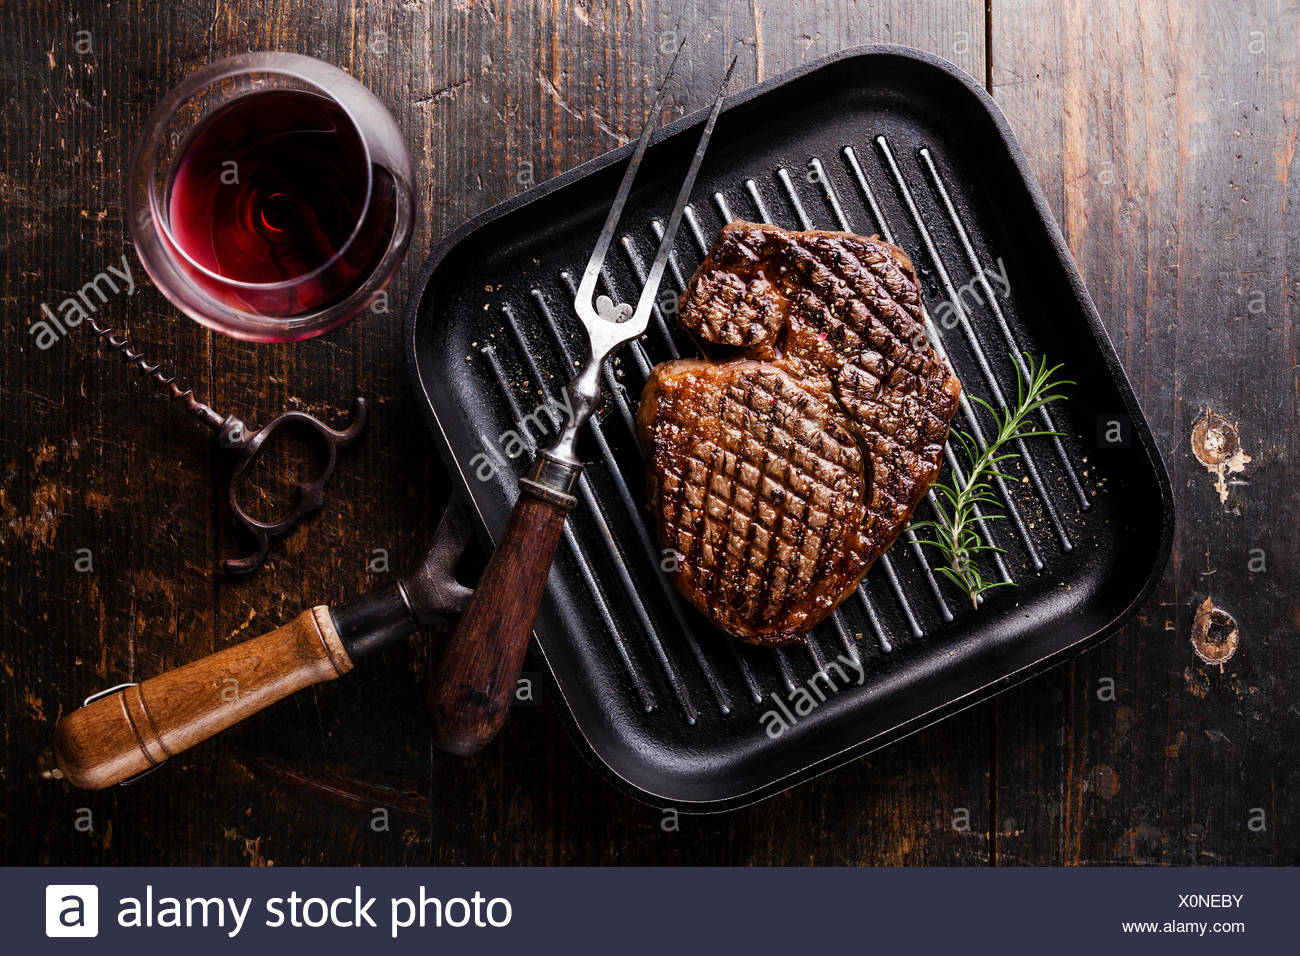 Grilled Black Angus Steak Ribeye on grill iron pan on wooden background with wine Stock Photo